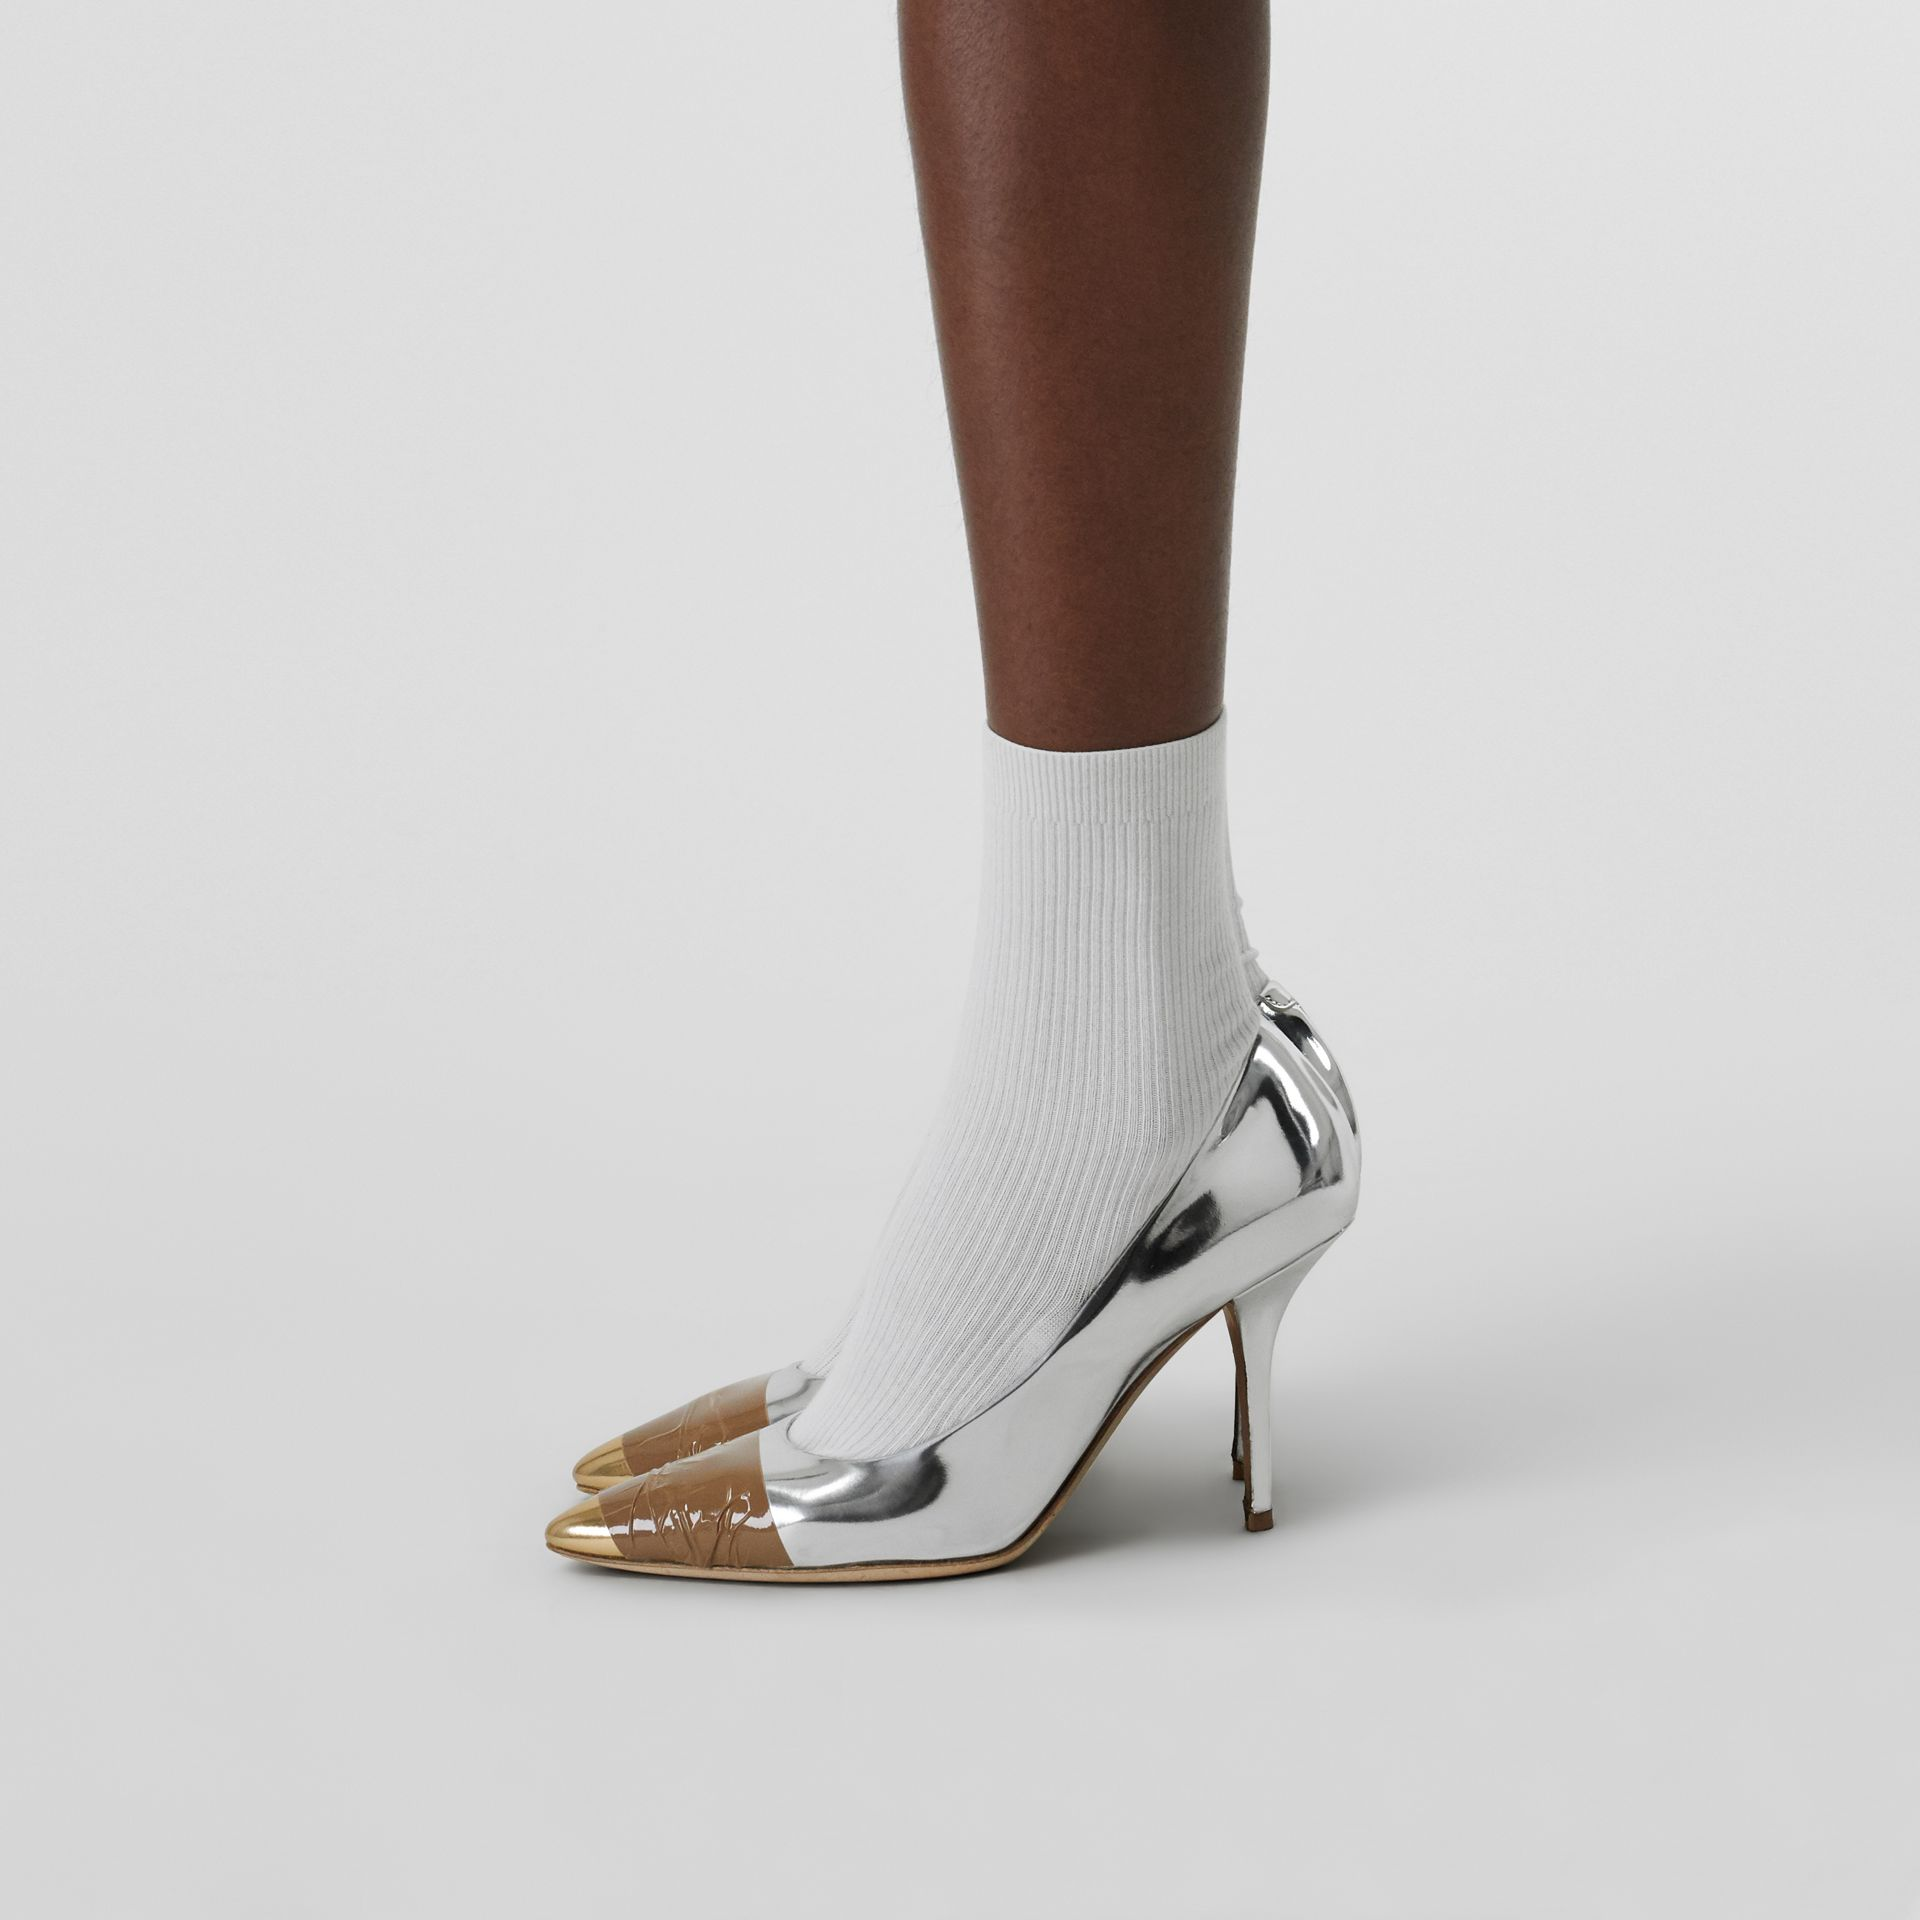 Tape Detail Mirrored Leather Pumps in Silver/gold - Women | Burberry Hong Kong - gallery image 2